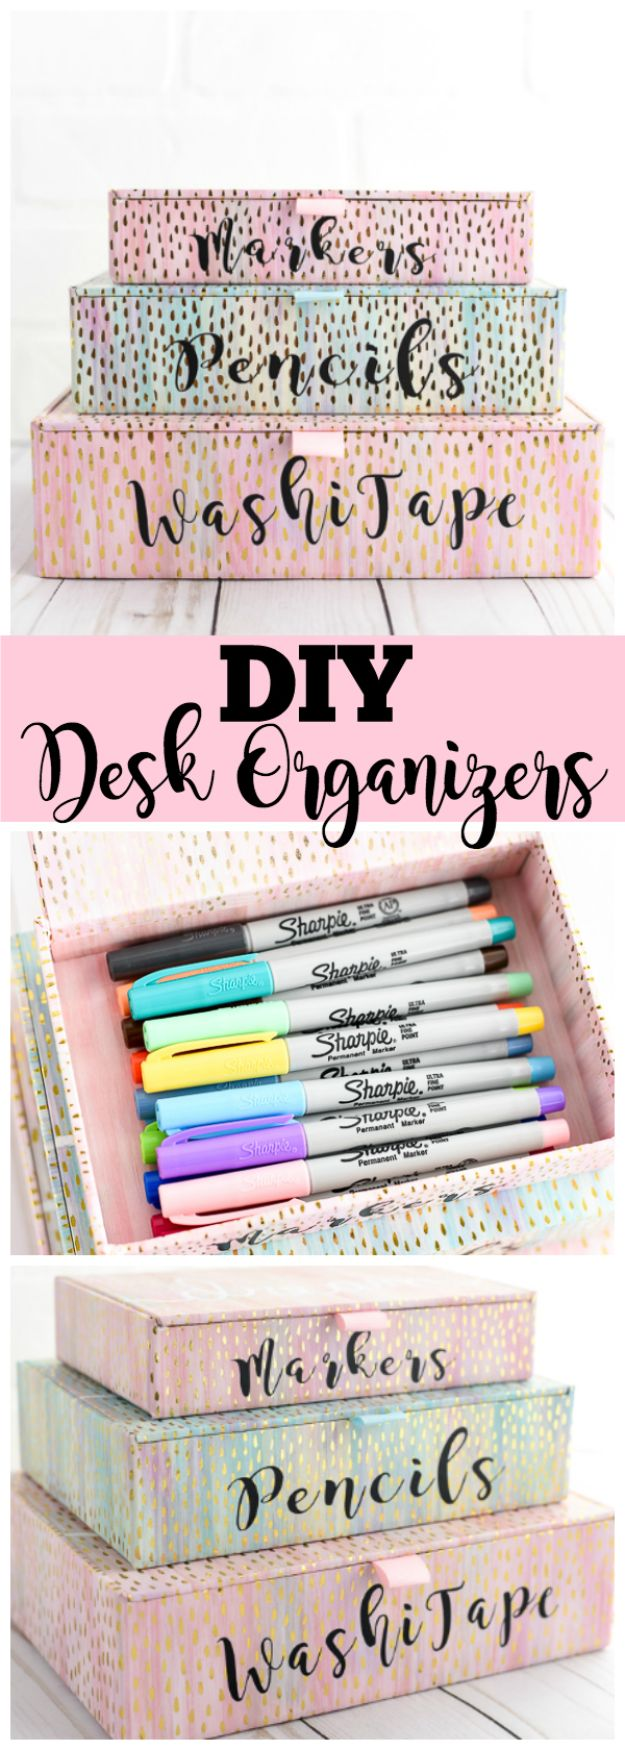 Organizing Ideas for Your Life - DIY Desk Organizers - Easy Crafts and Cool Ideas for Getting Organized - Best Ways to Get Organized - Things to Make for Being More Efficient and Productive - DIY Storage, Shelving, Calendars, Planning #organizing